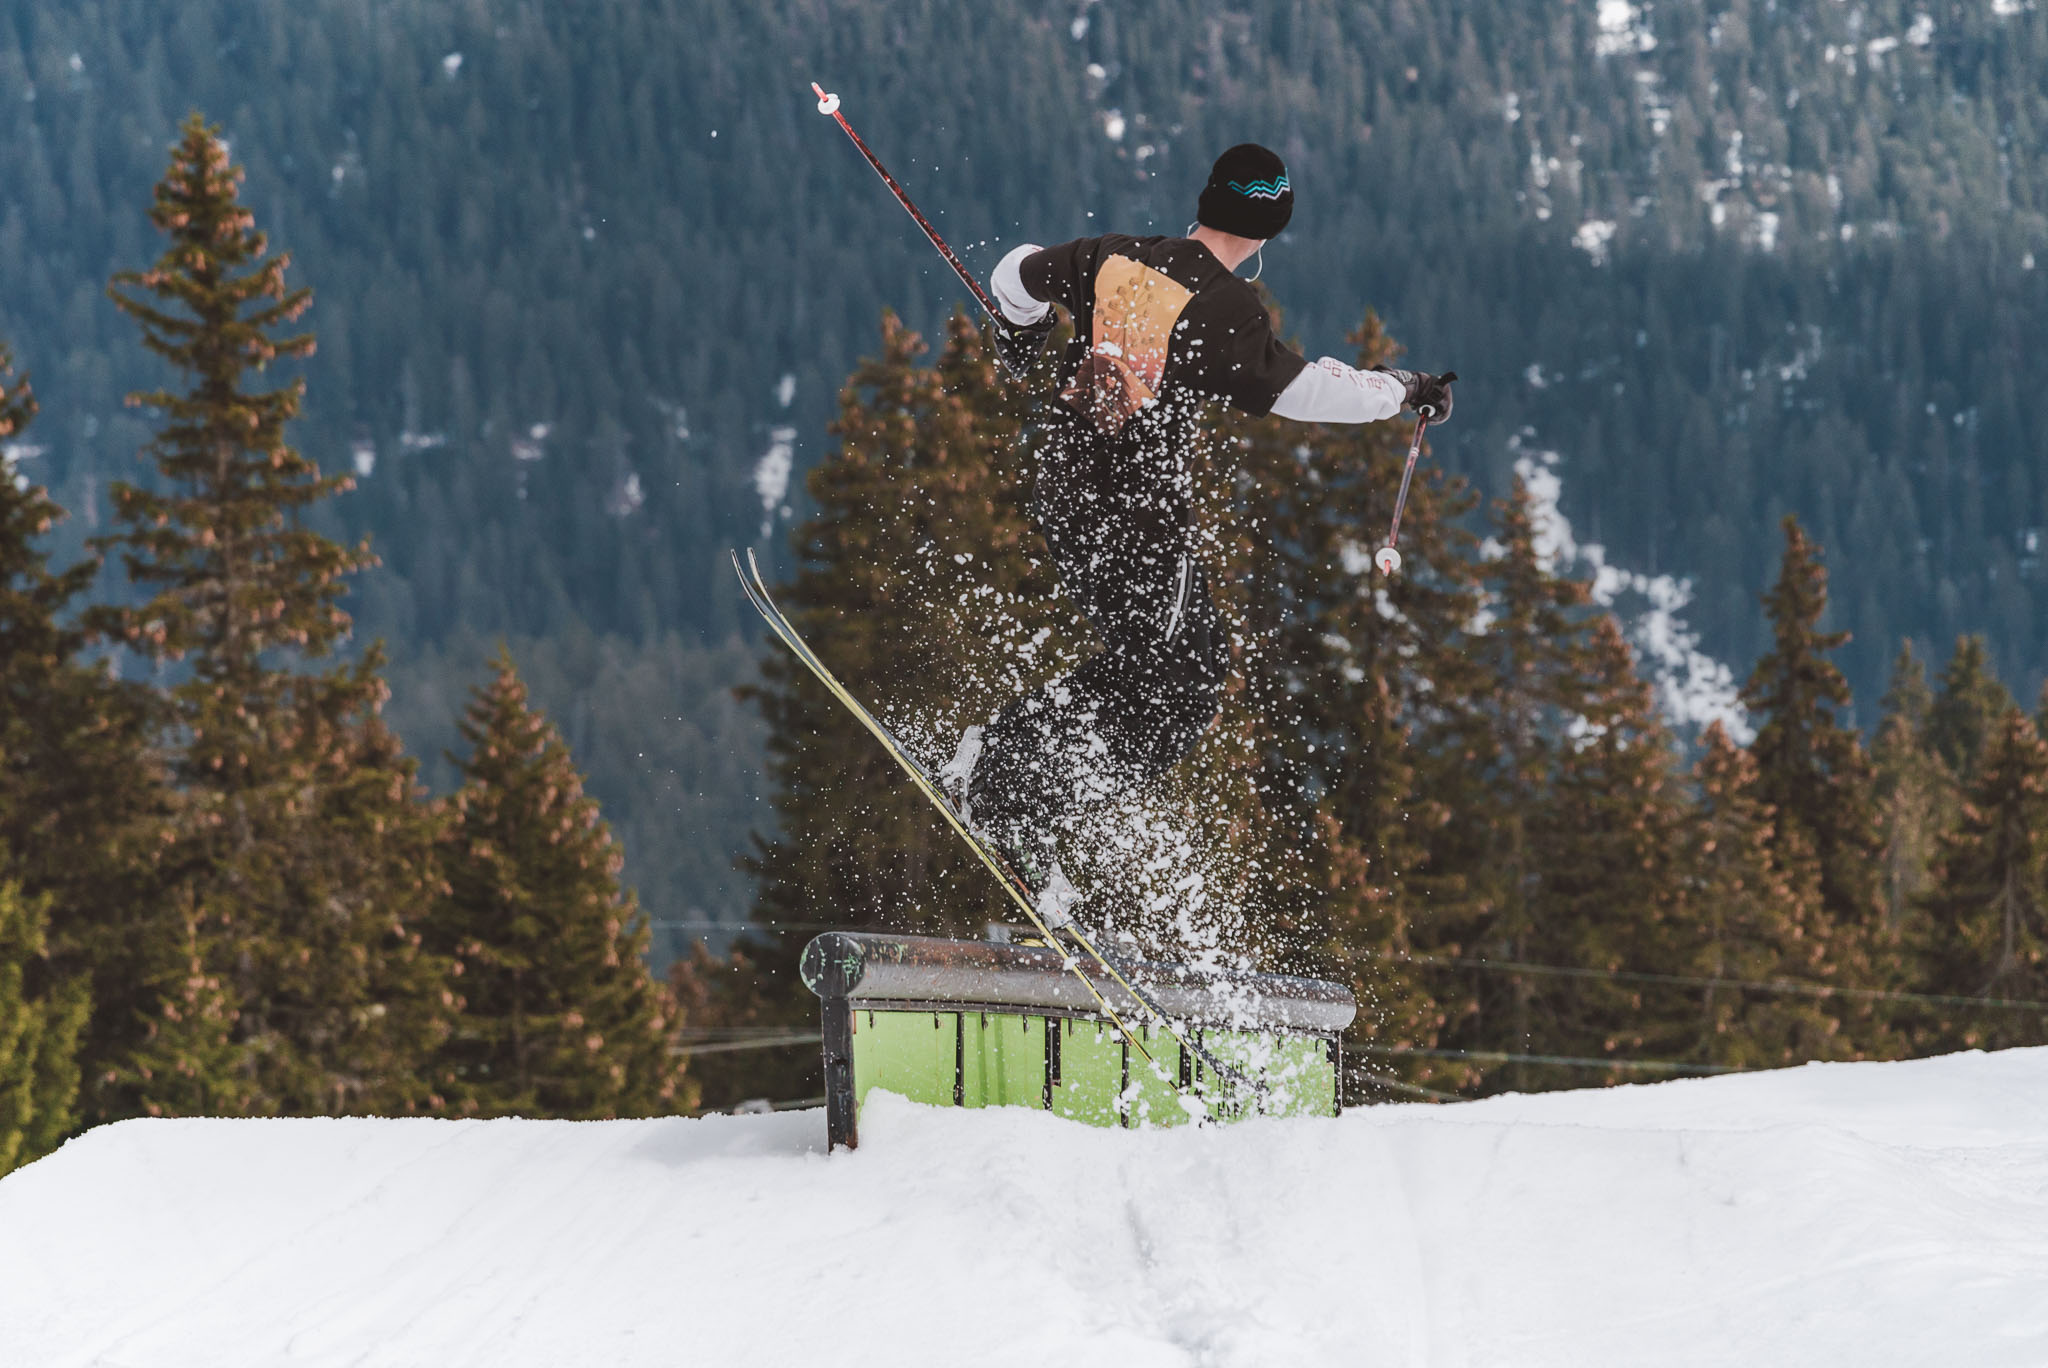 Peace out, es war wie immer nice in Laax, yo - Rider: Severin Guggemoos